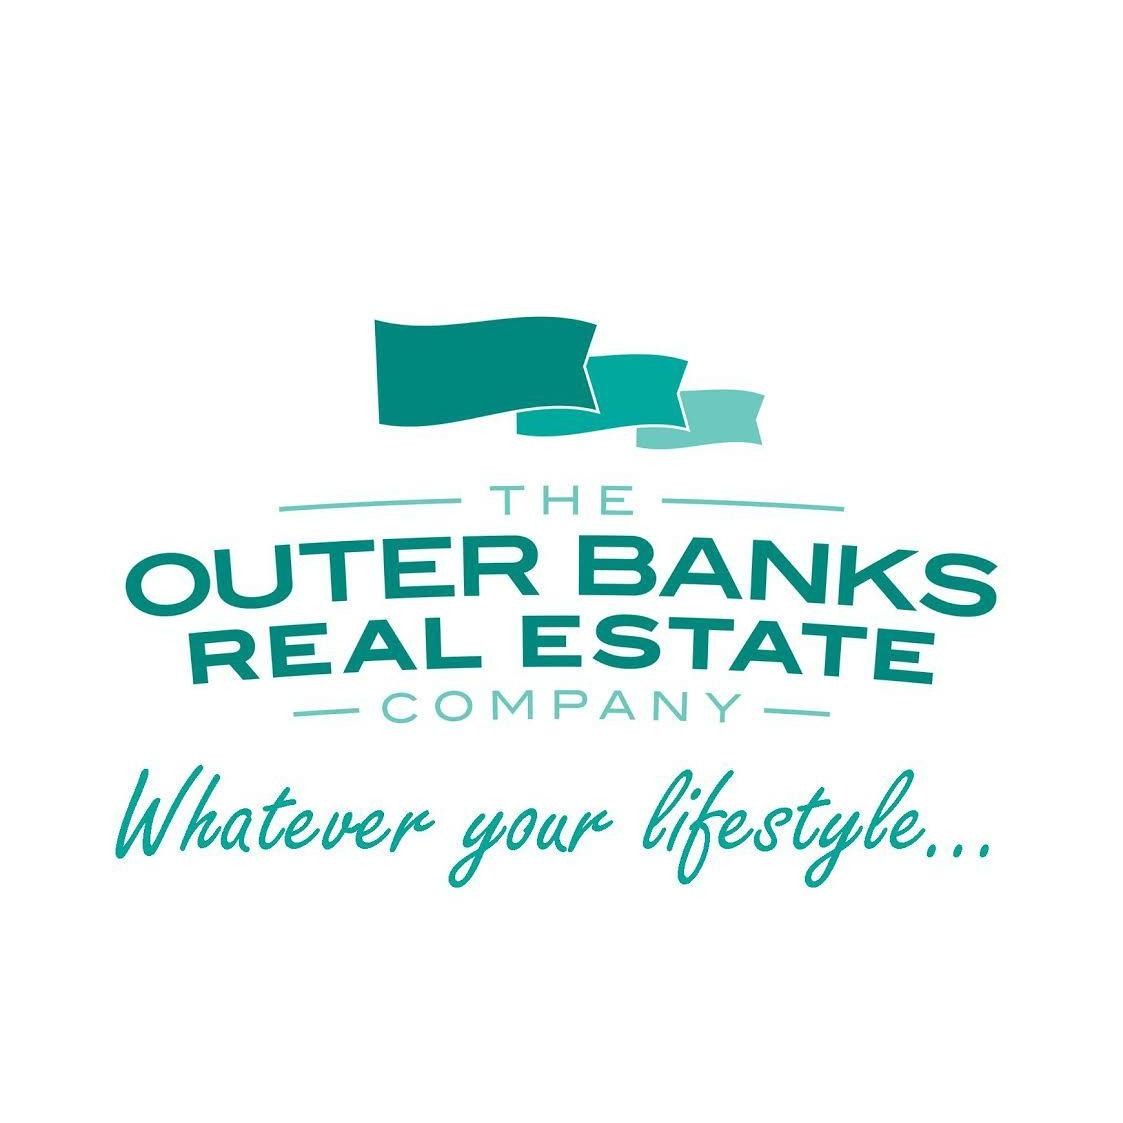 Outer Banks Real Estate Company